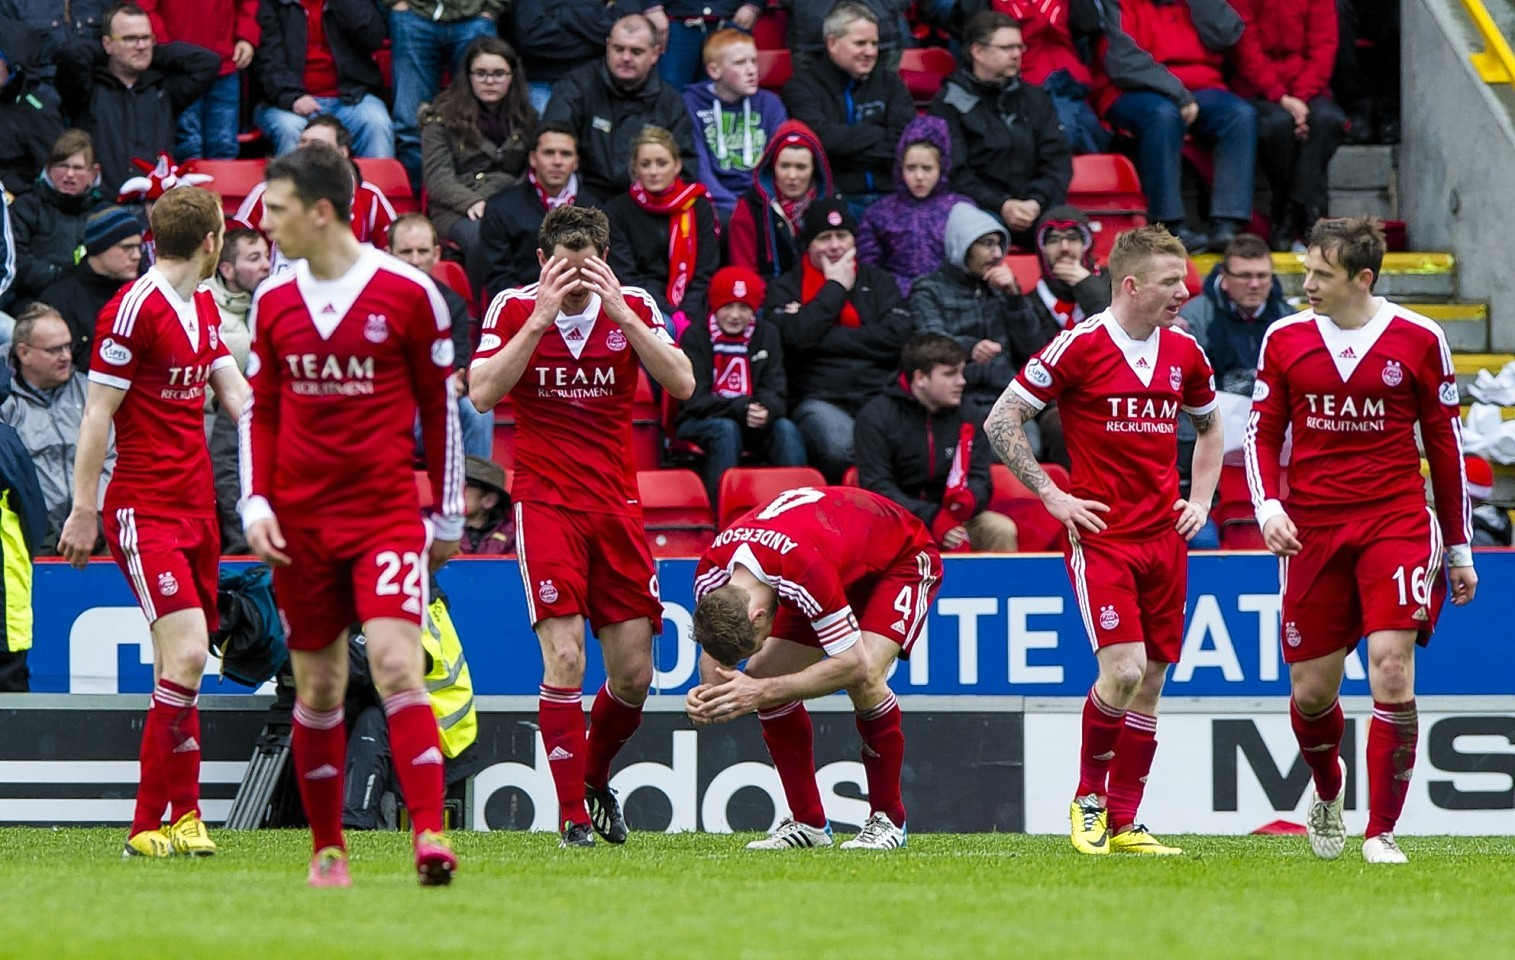 The Dons players were left gutted after